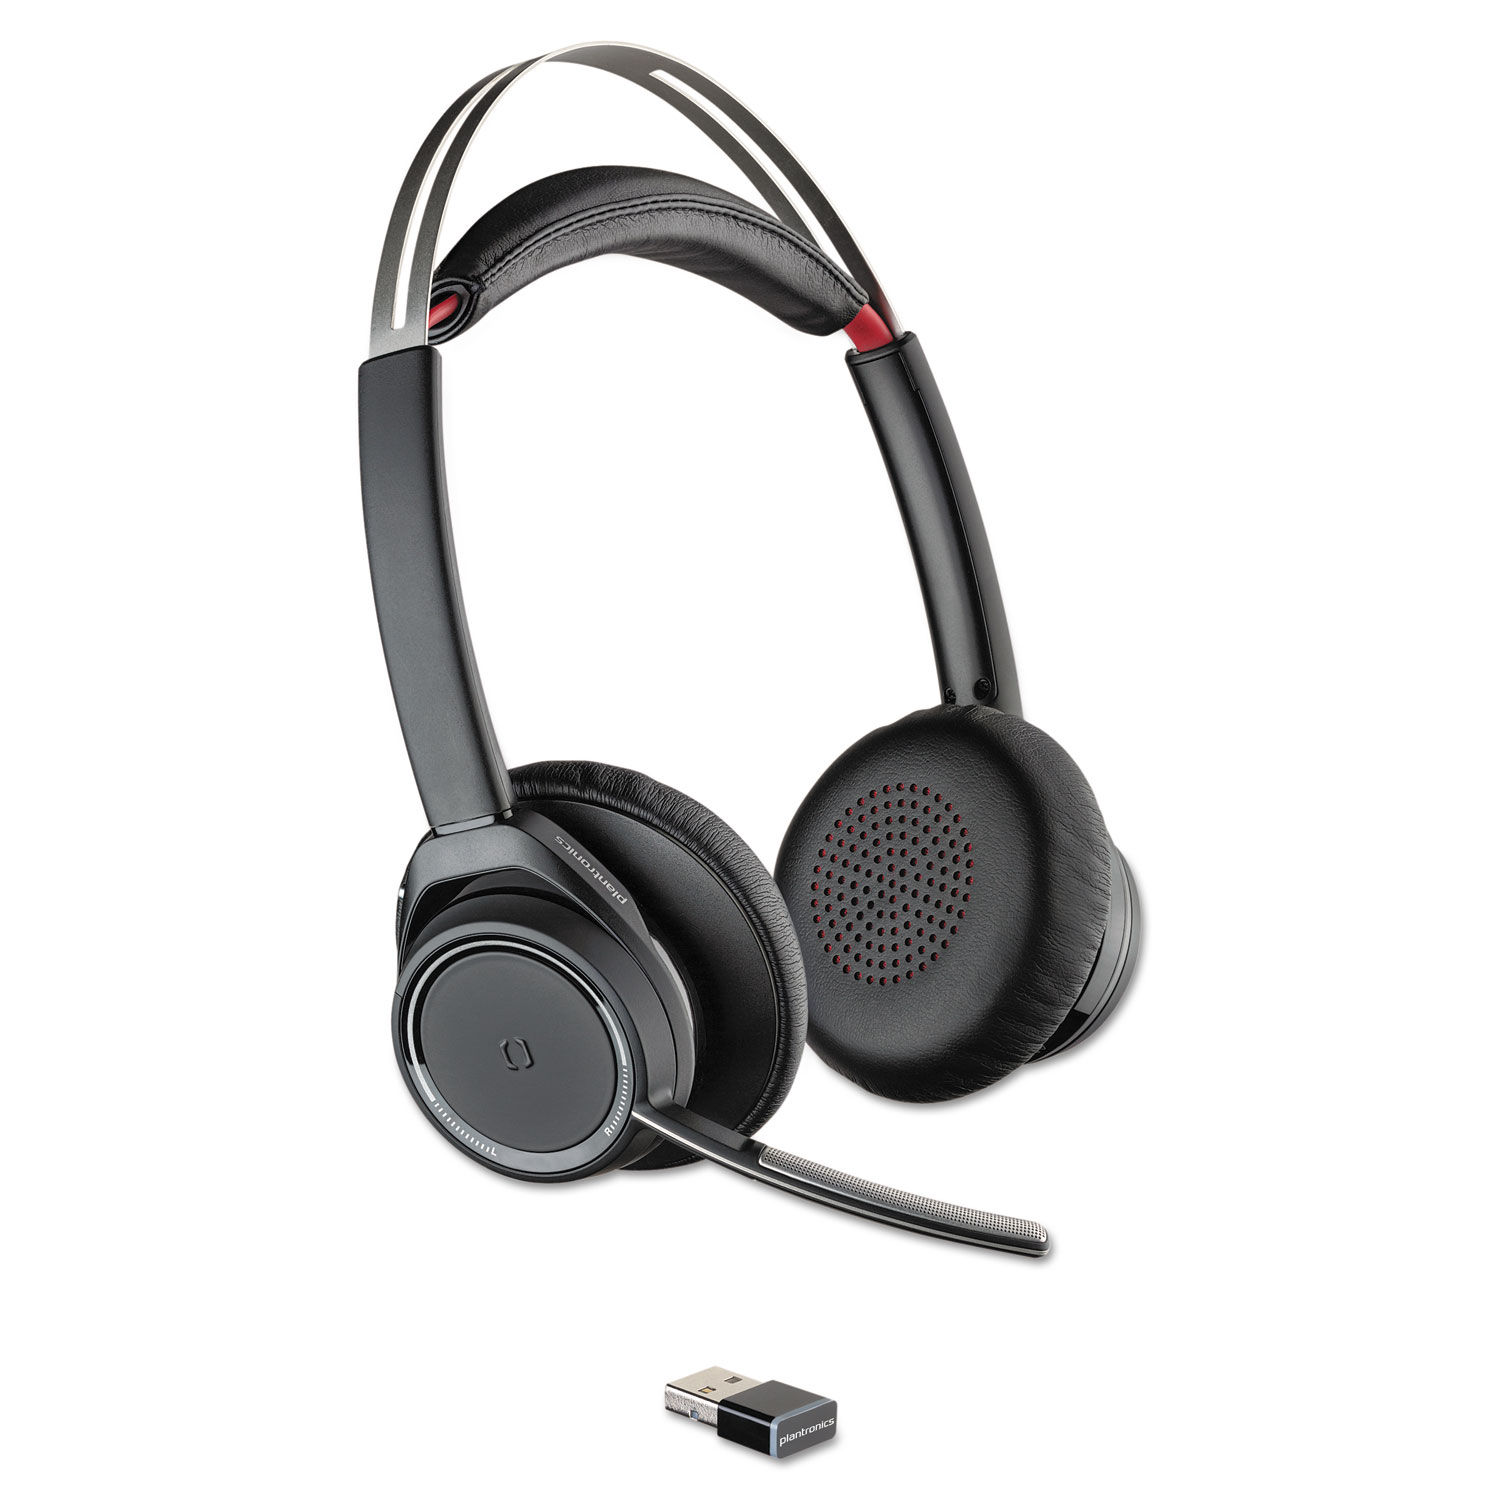 Voyager Focus Uc Stereo Bluetooth Headset System With Active Noise Canceling By Poly Pln20265201 Ontimesupplies Com